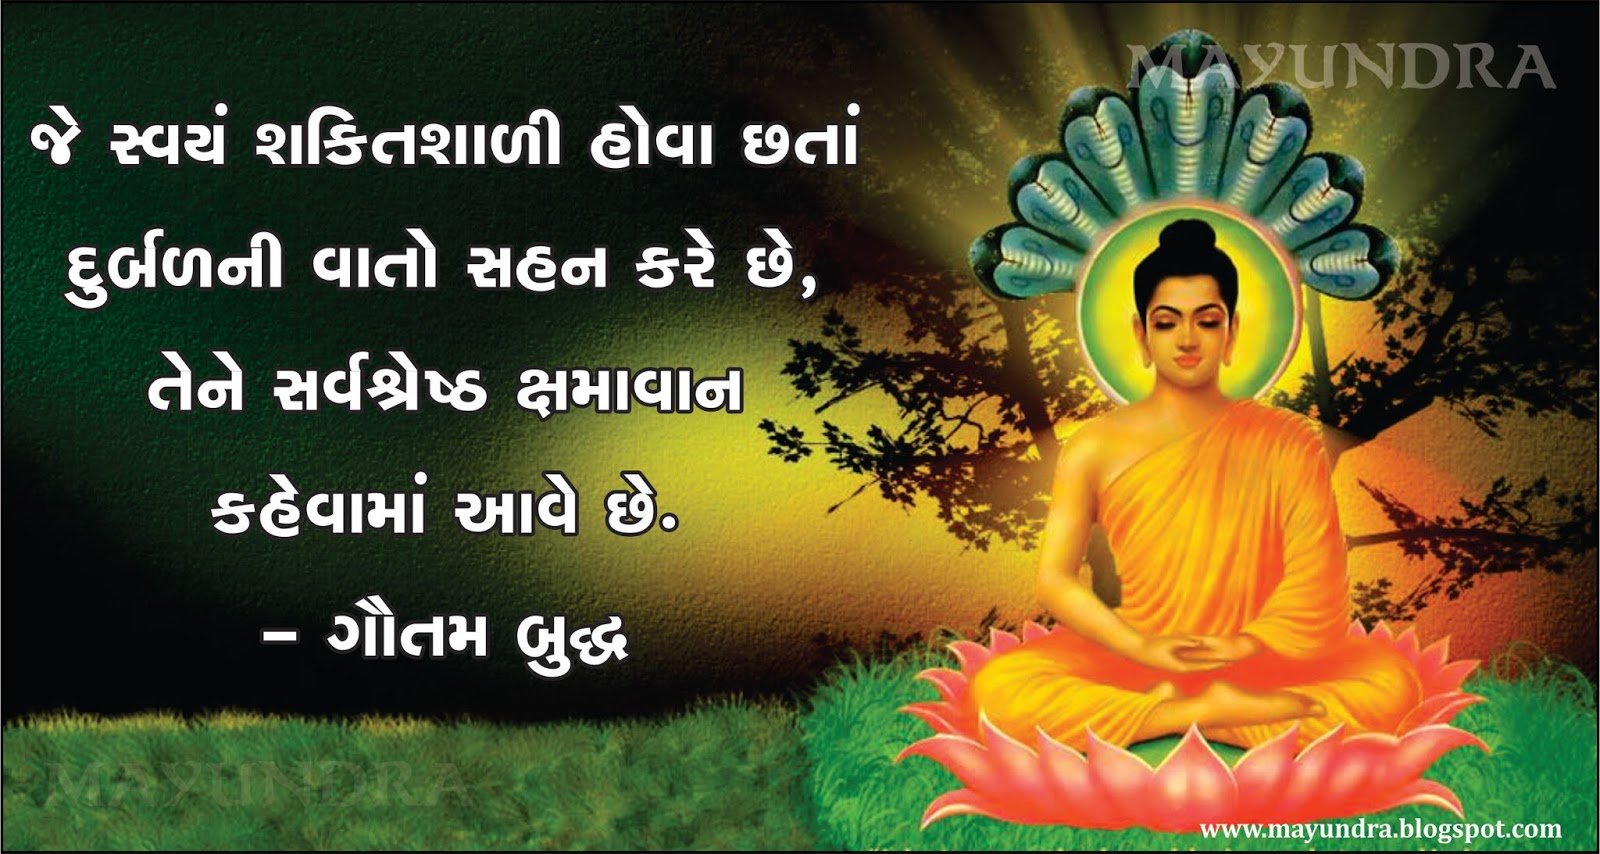 Gujarati Quotes Gautam Buddha Quotes India Quotes Health Tips